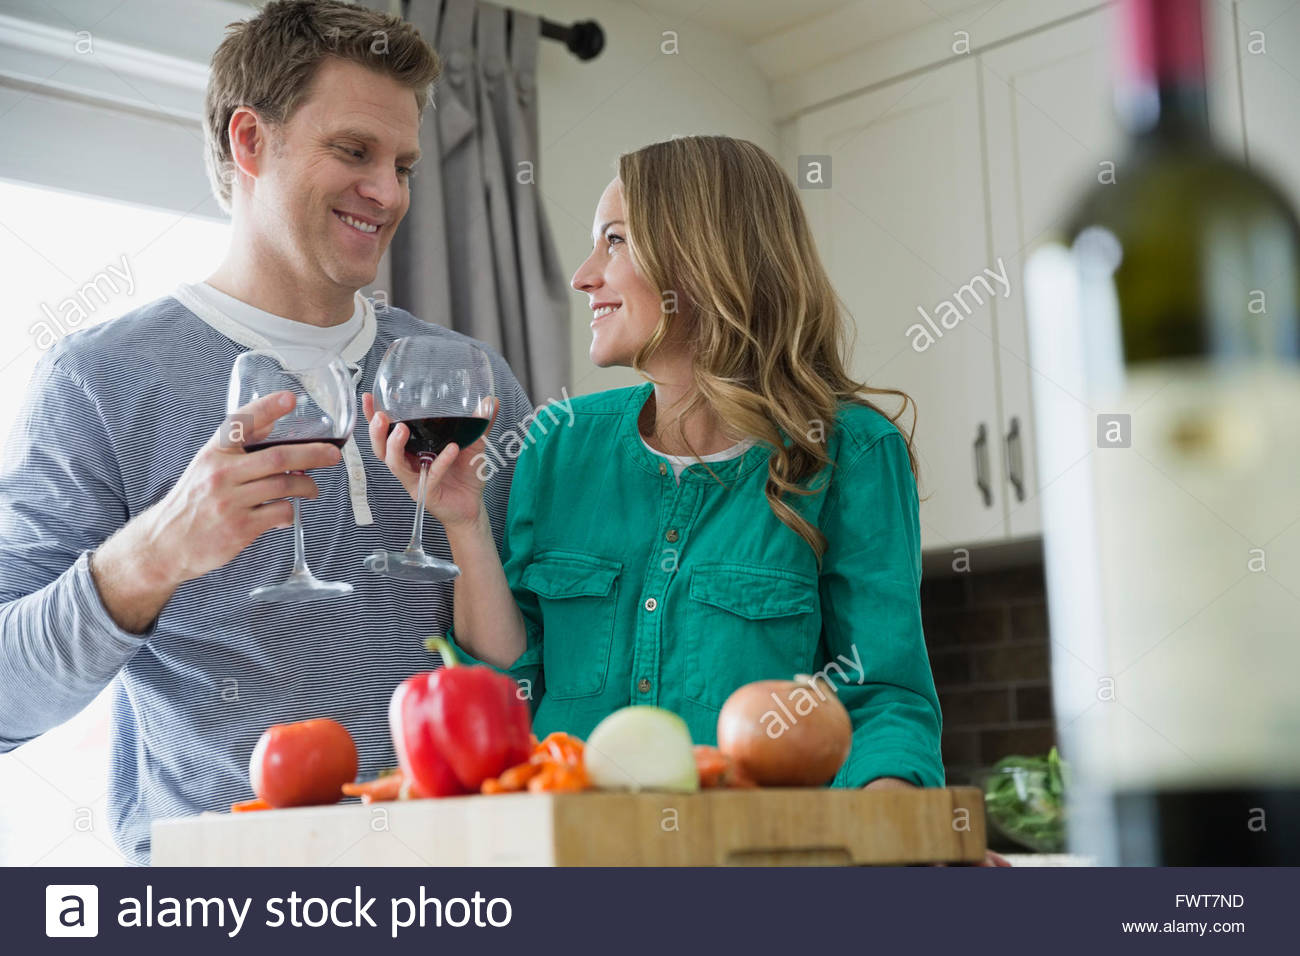 Couple toasting with wine as they prepare dinner. - Stock Image